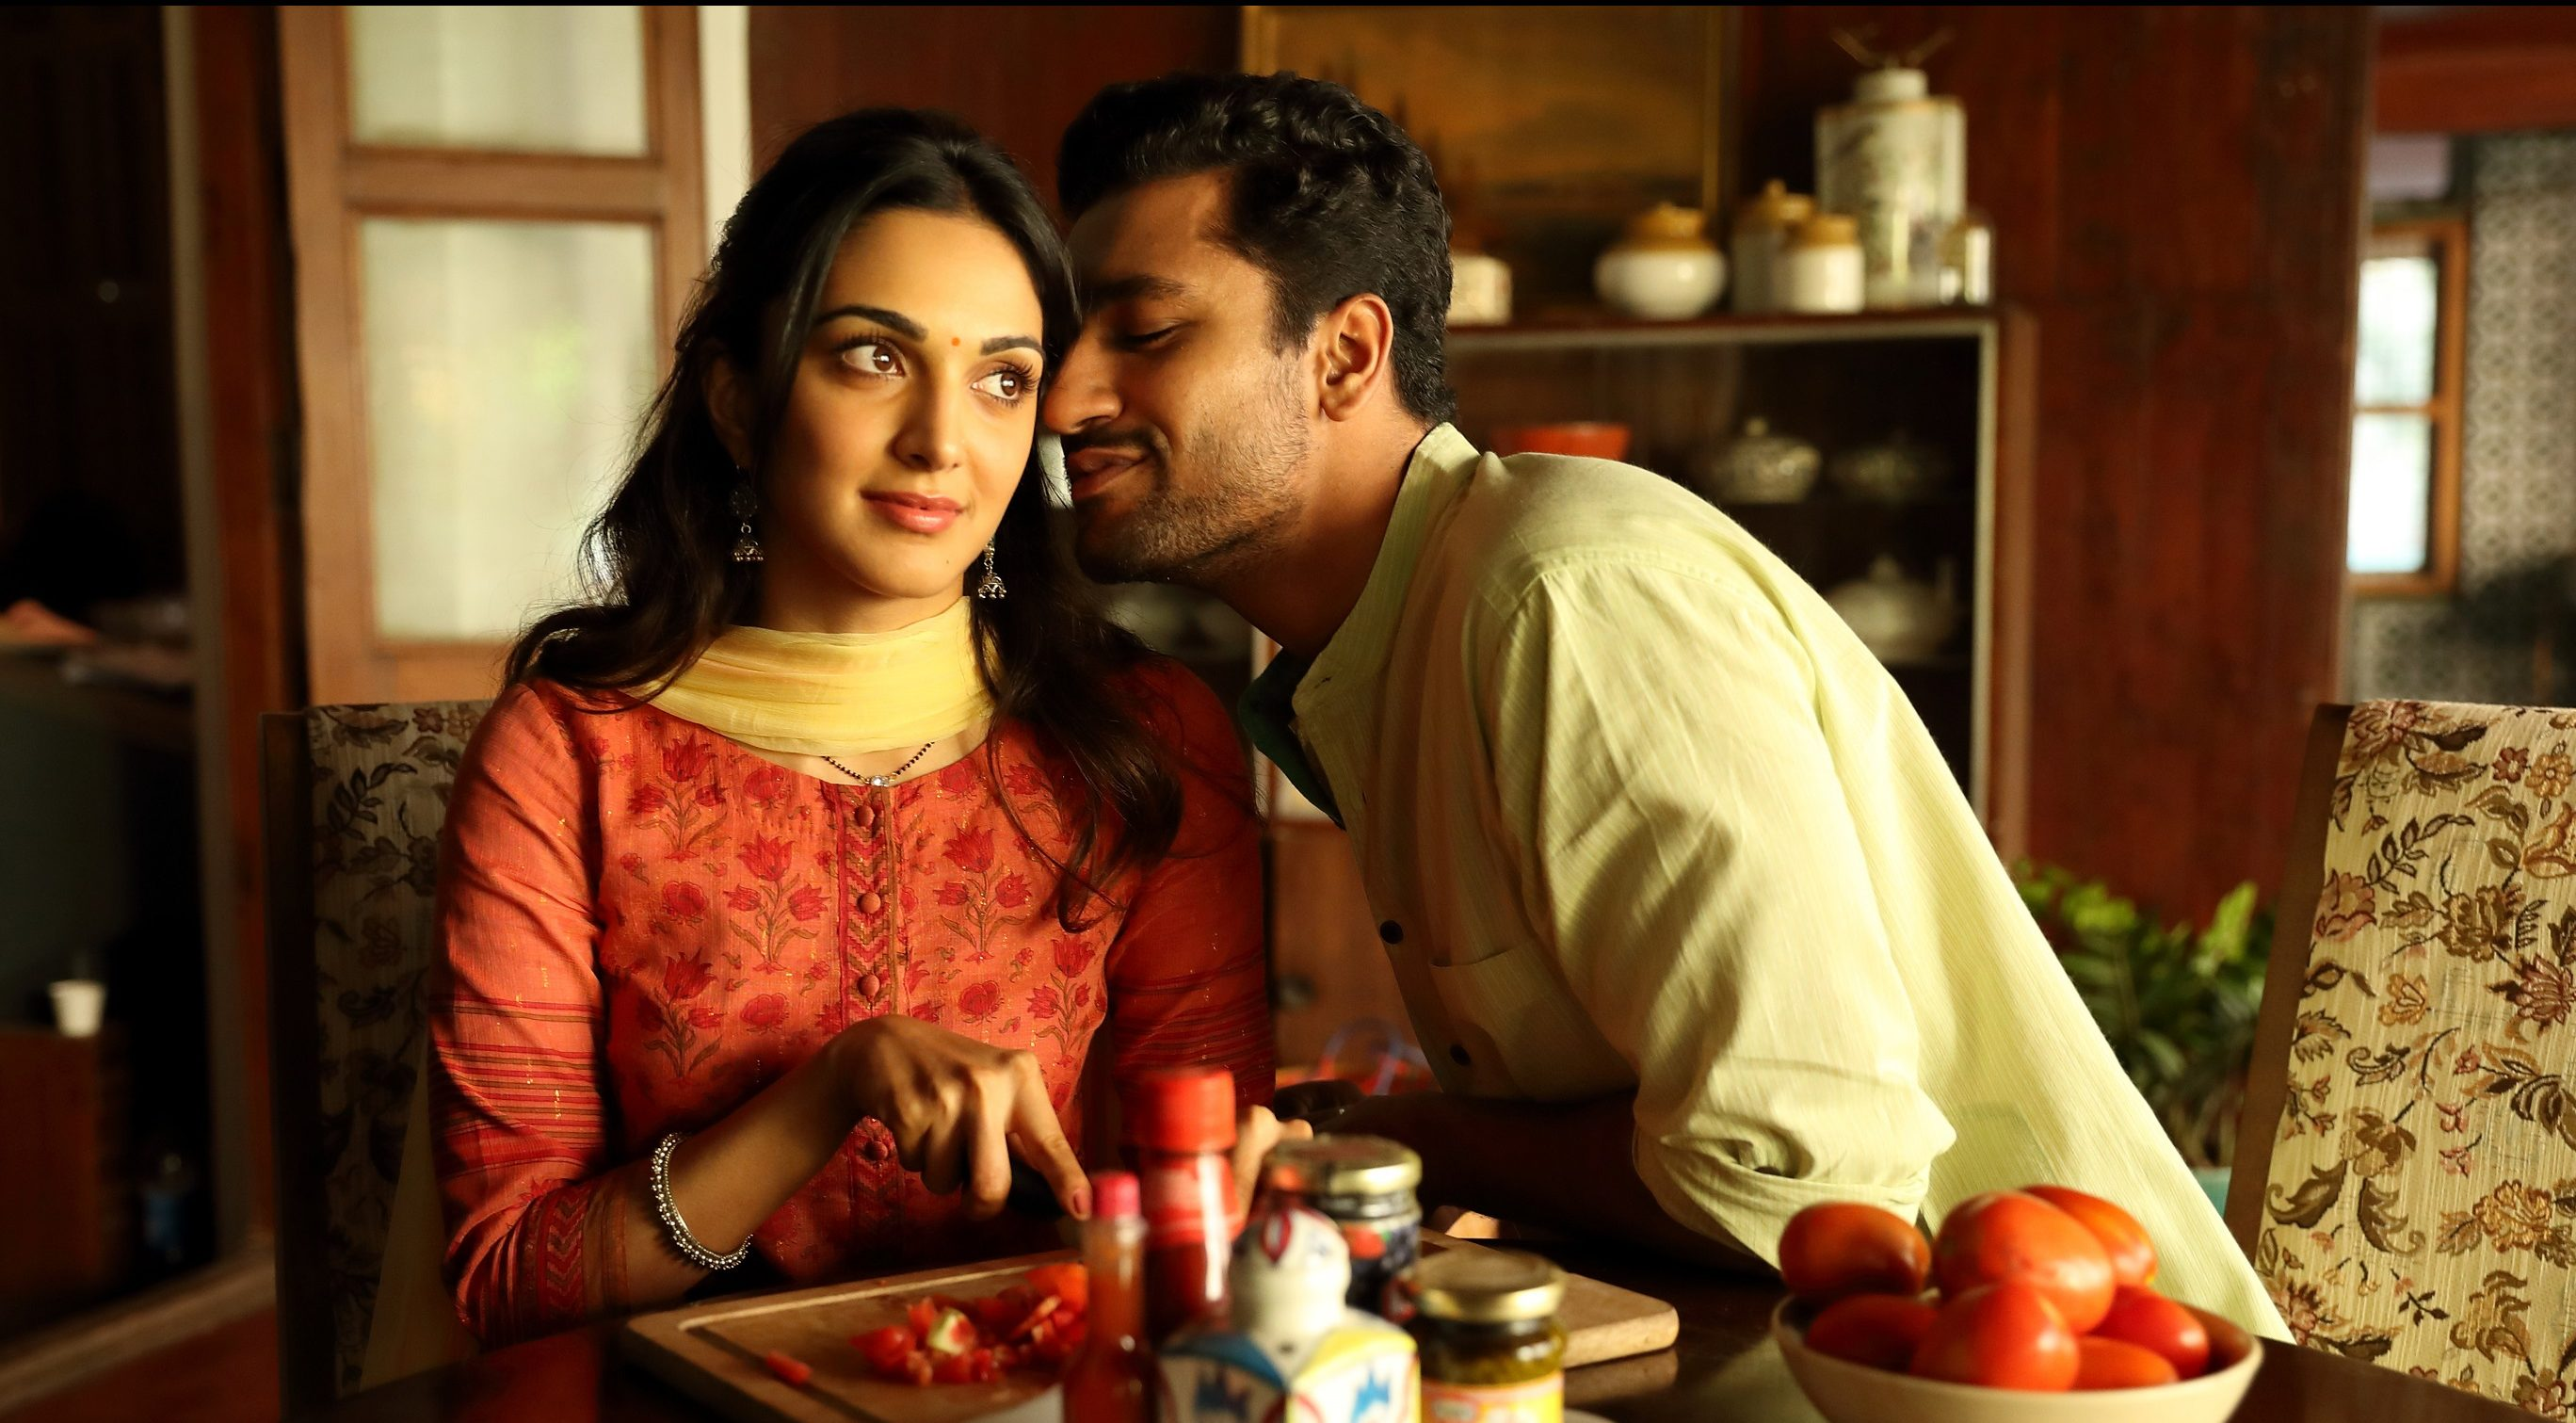 Kiara Advani and Vicky Kaushal in Lust Stories. Image credit: Netflix.